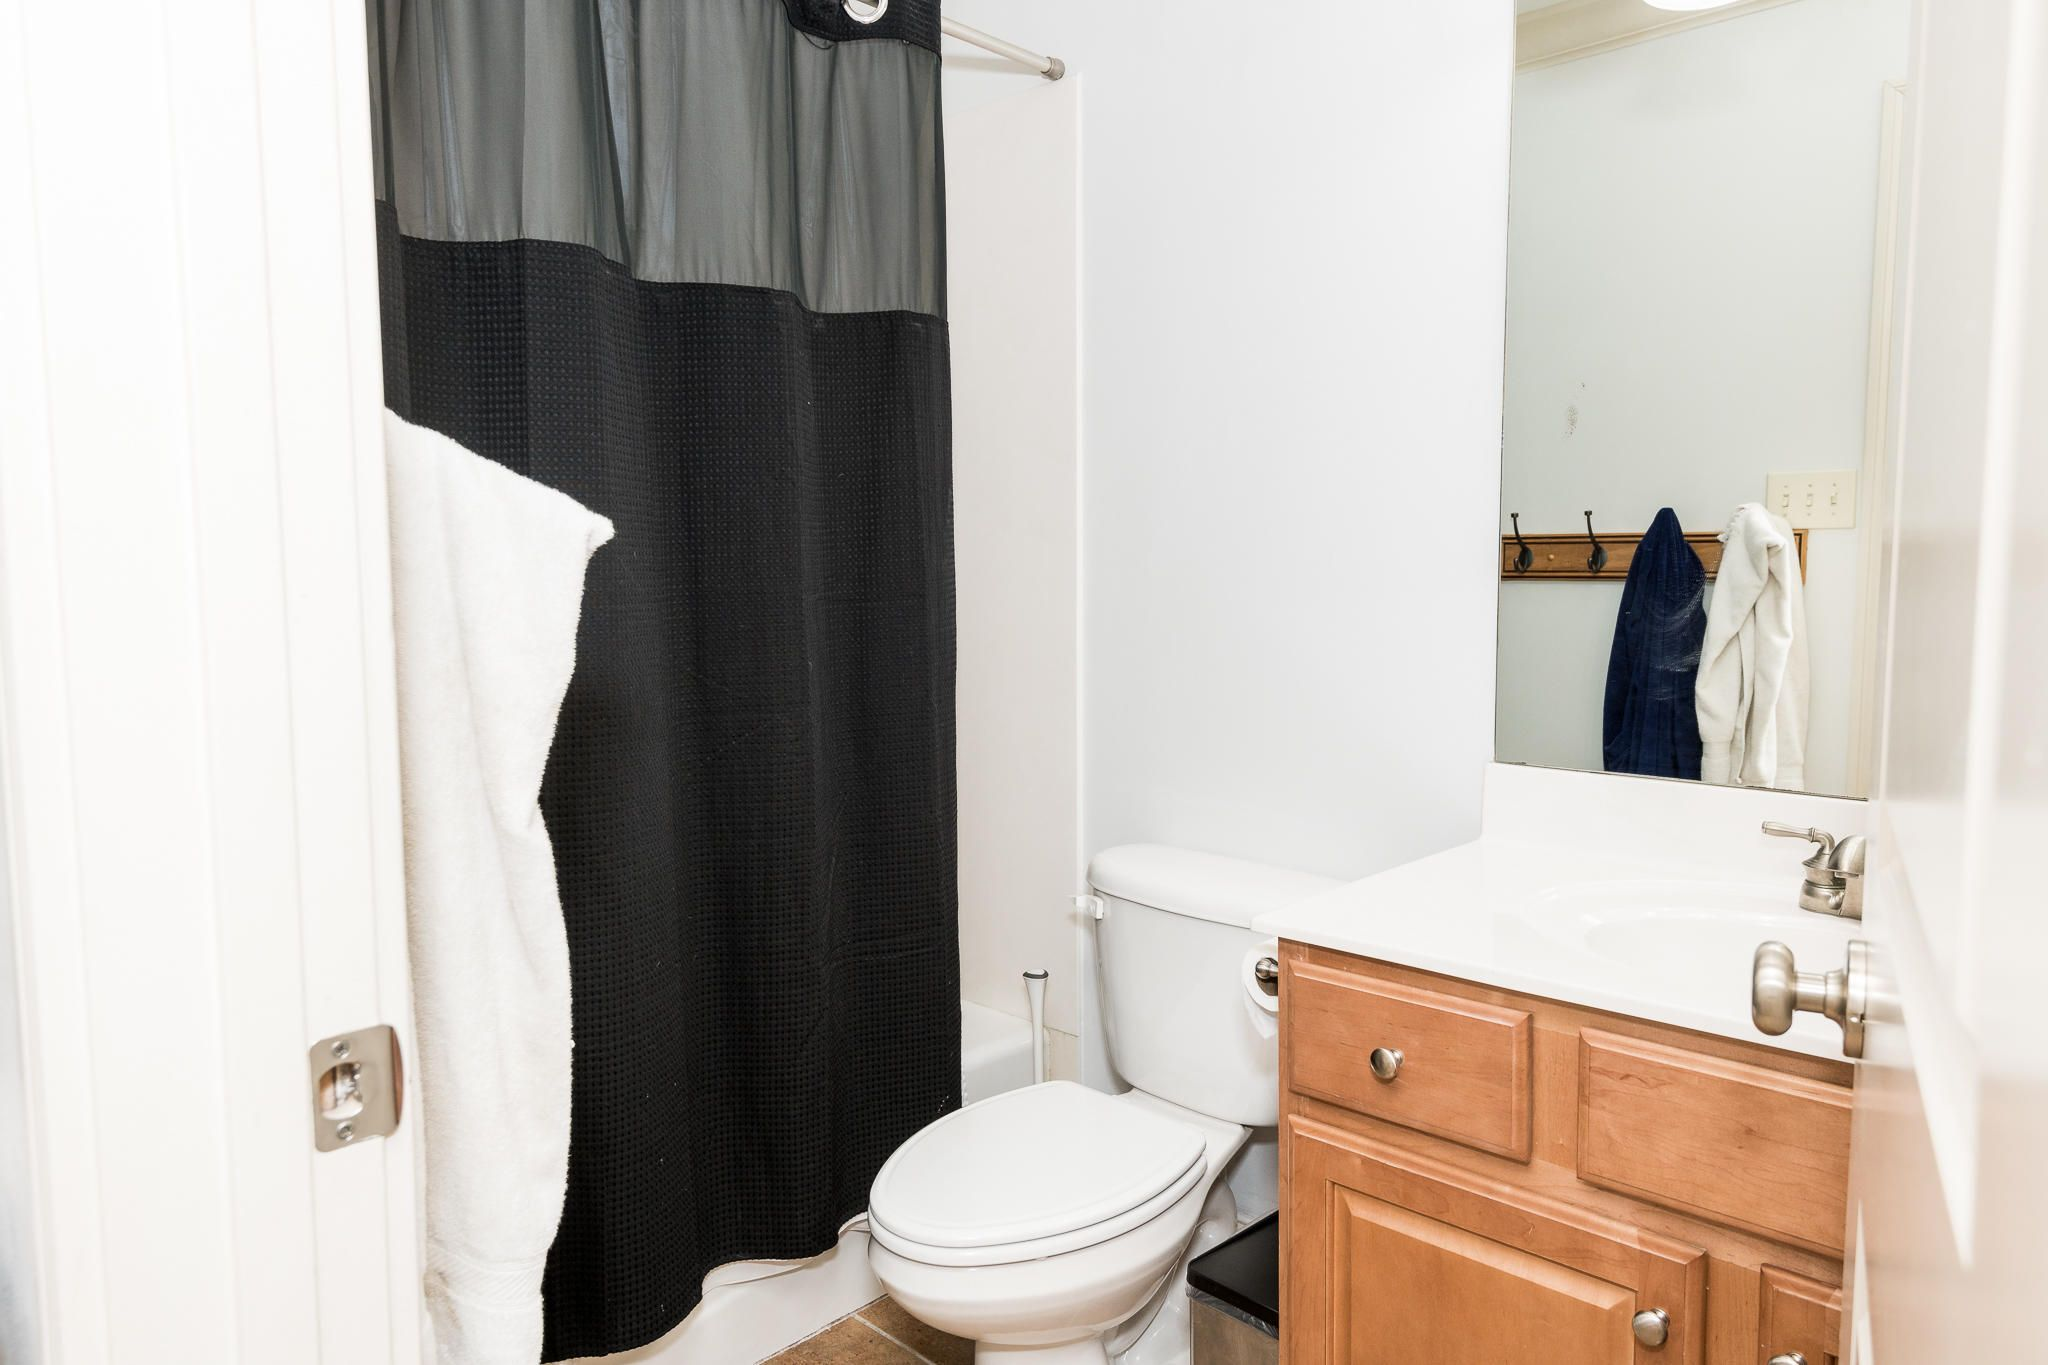 All bedrooms connected to a full bathroo